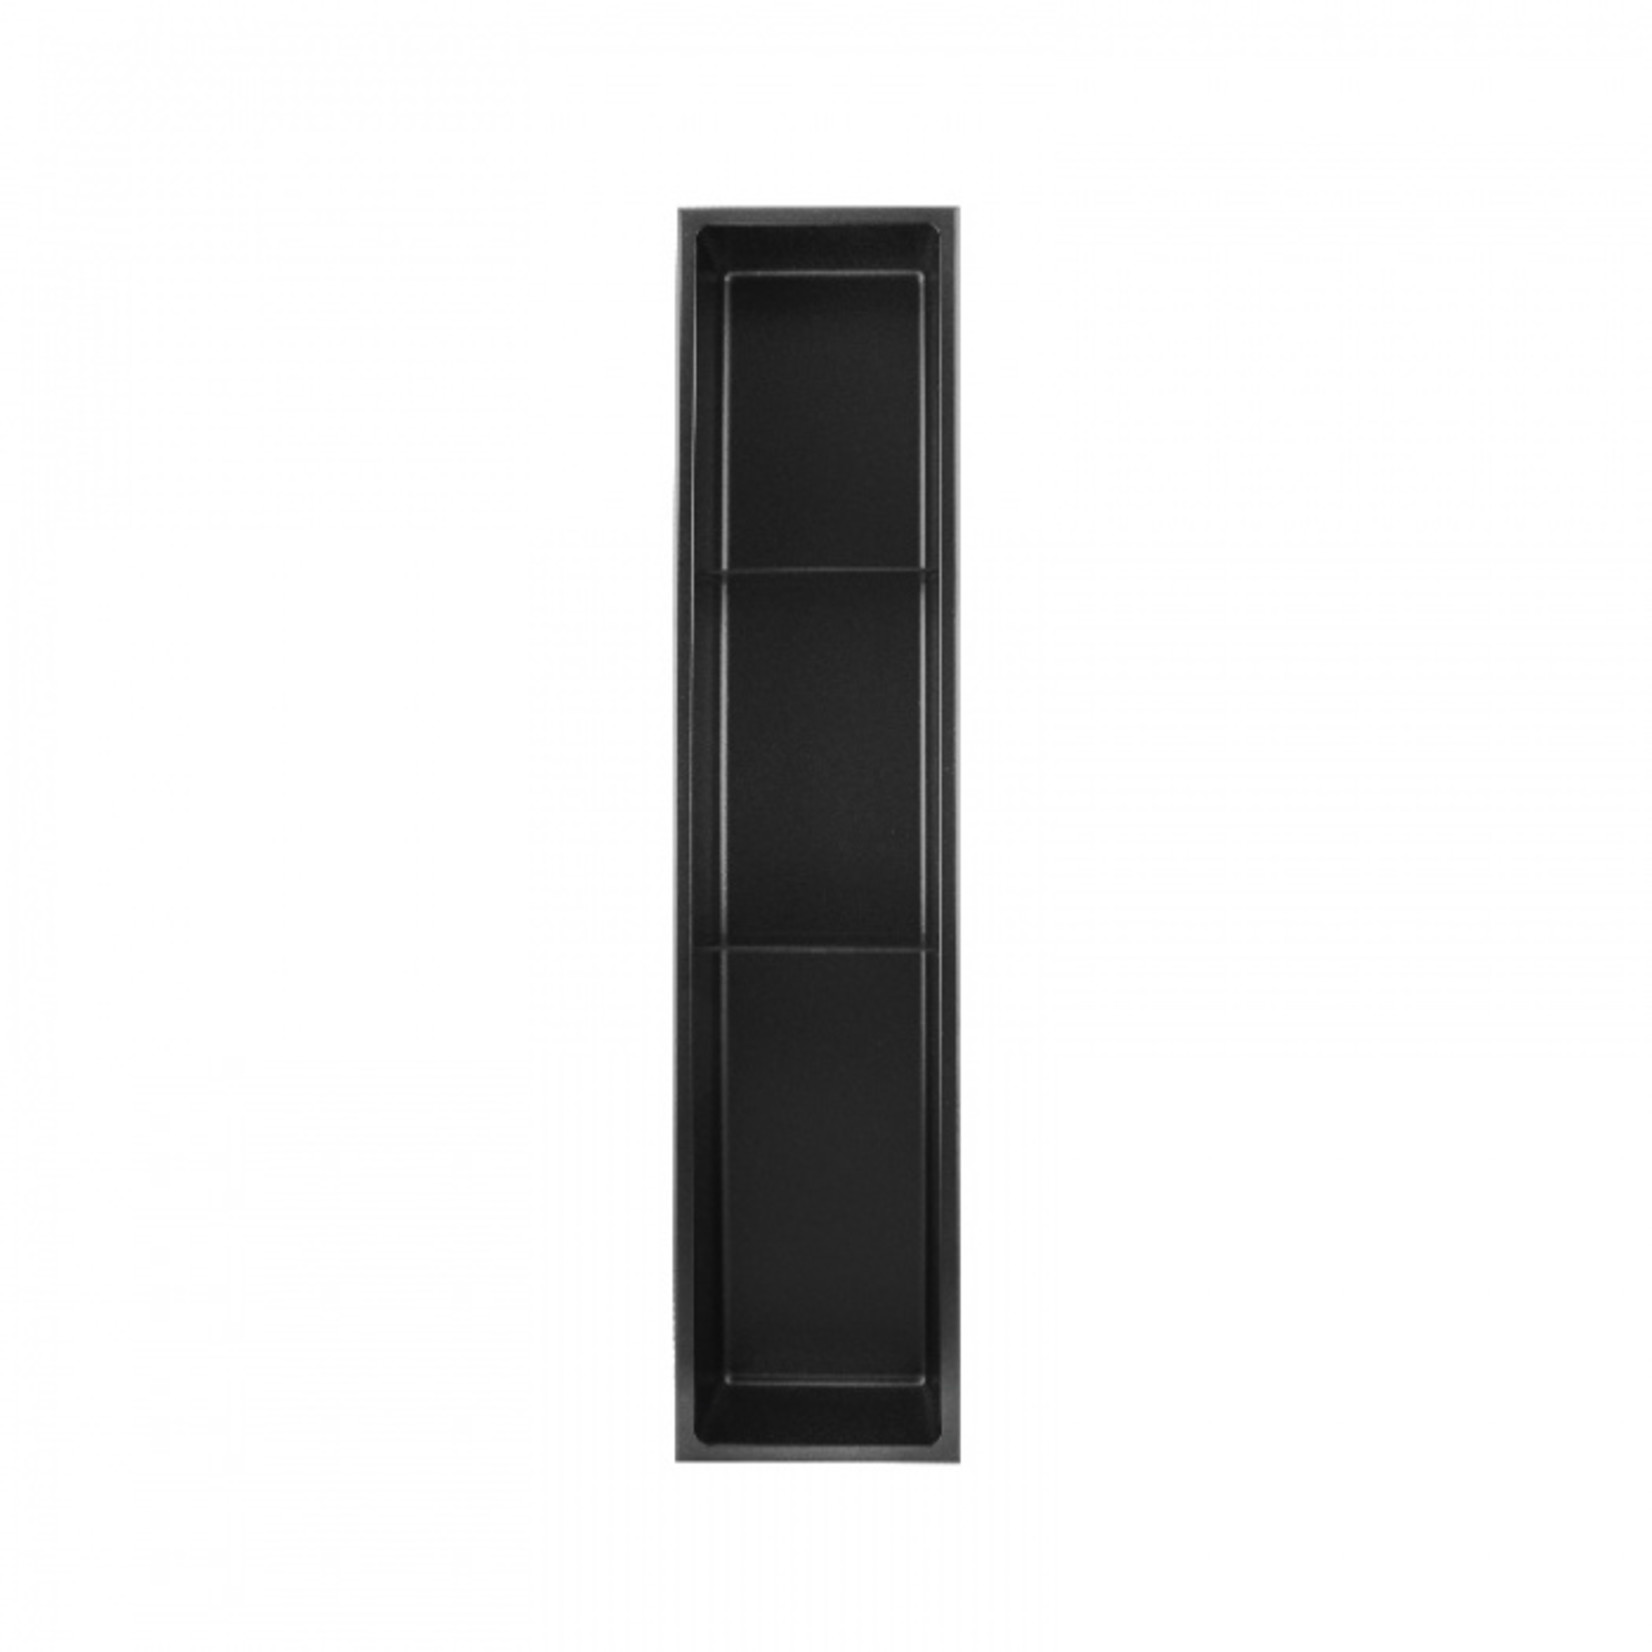 Wall niche with 2 shelves 36x8 Black Nautika NI368TB